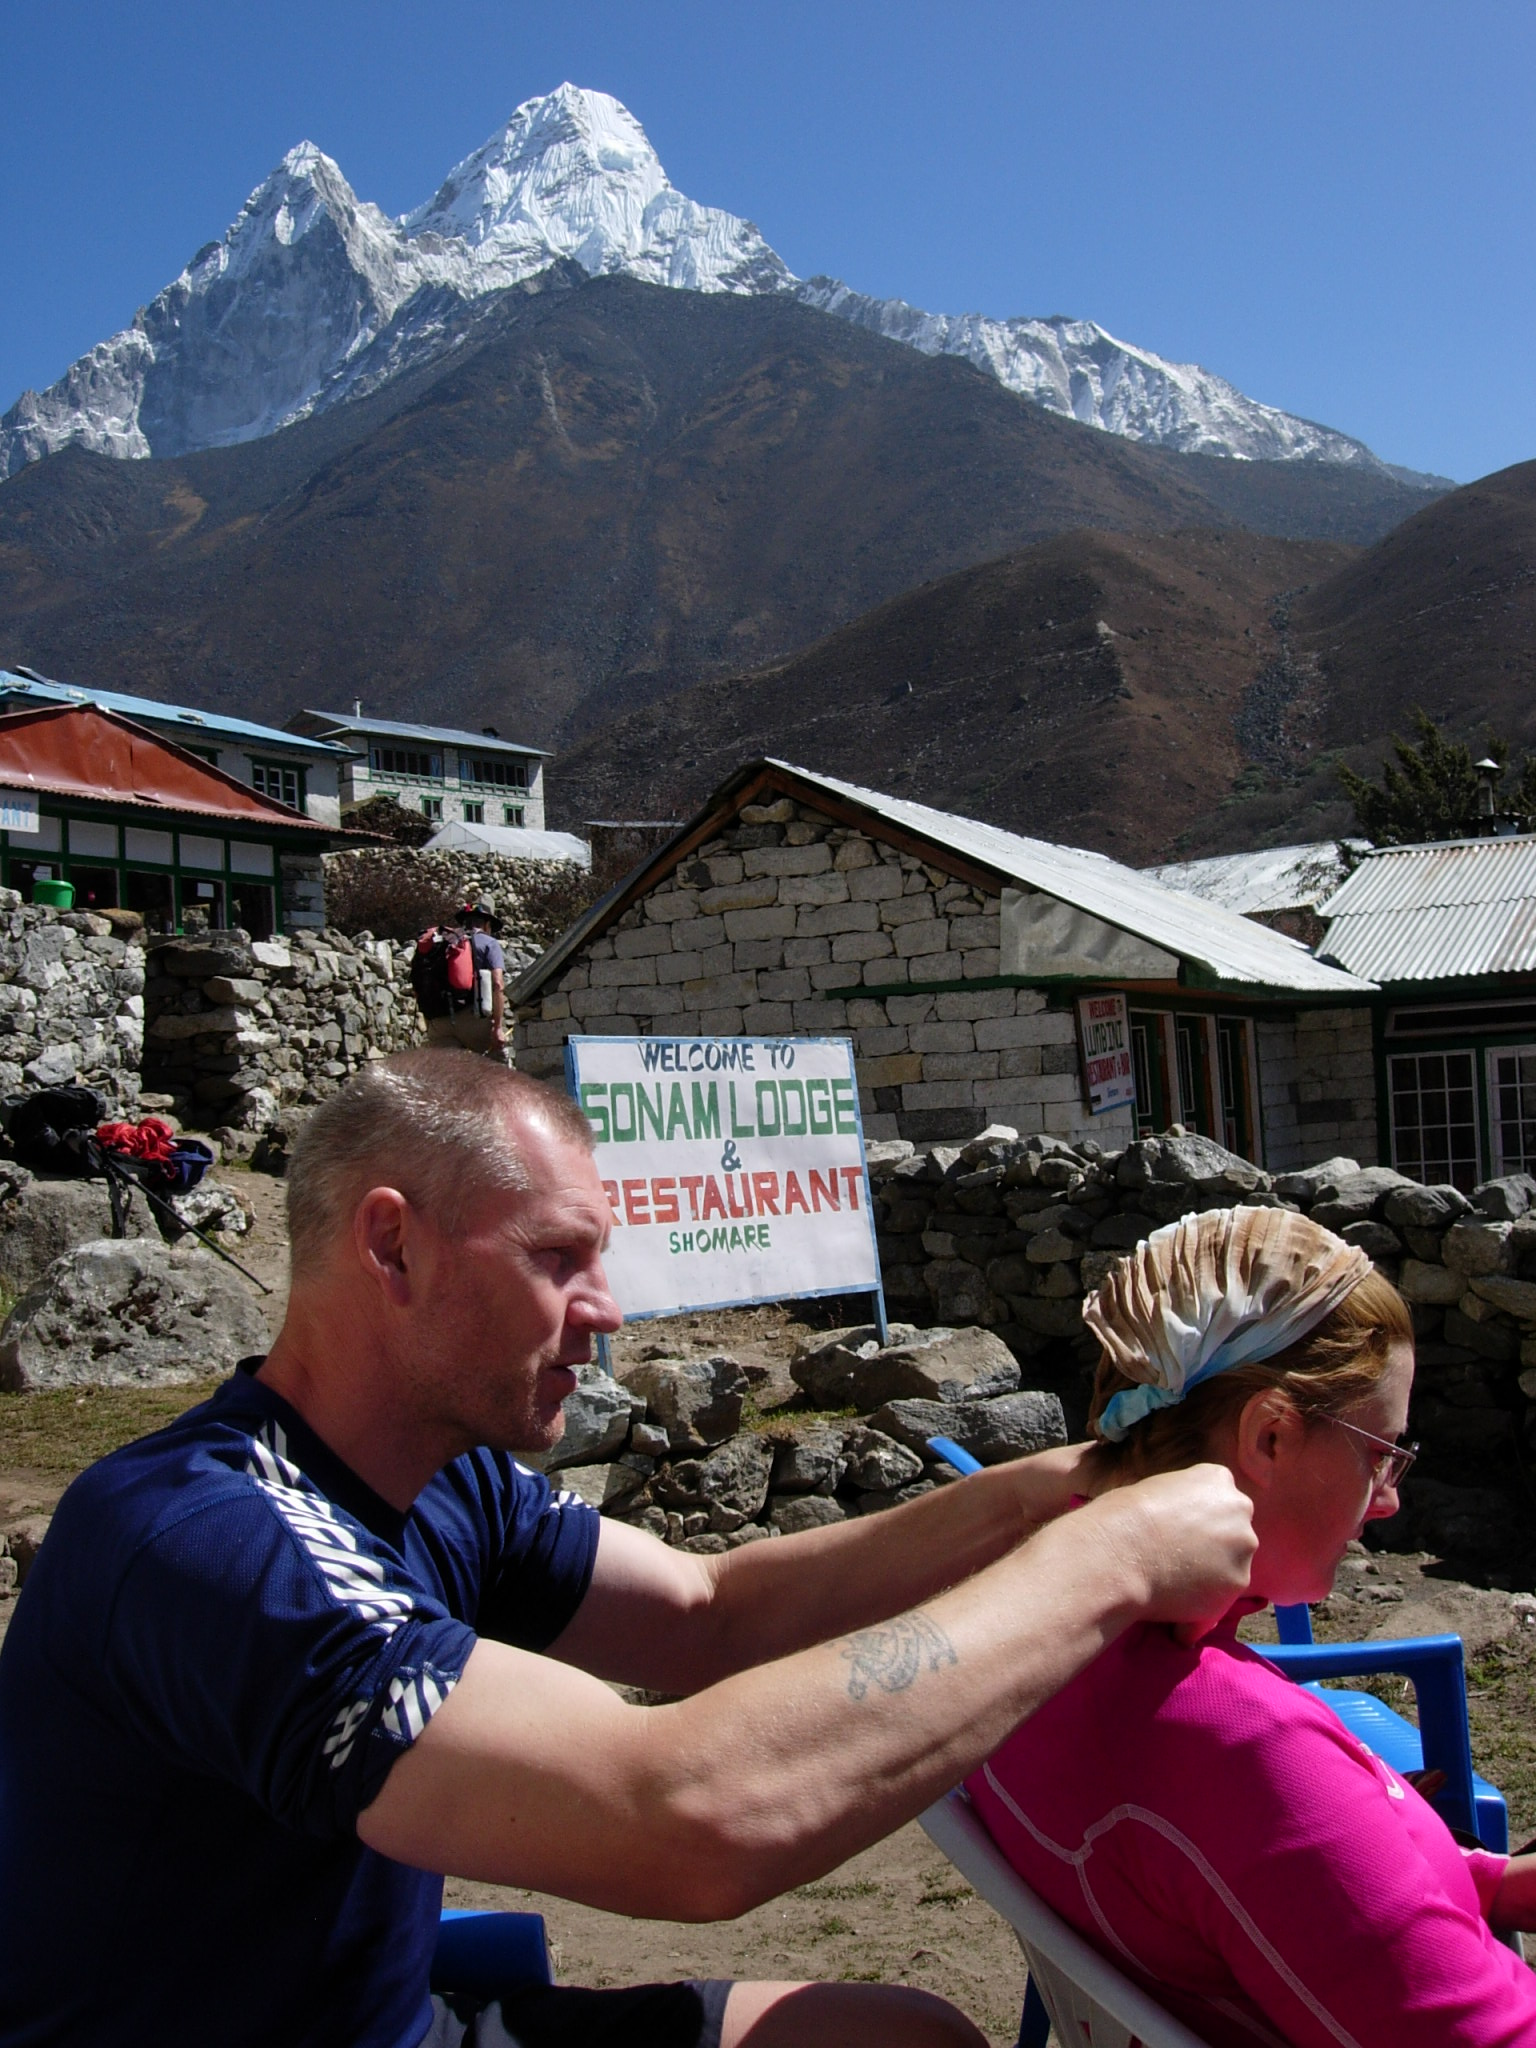 Here we see Steve massaging Marie's neck and shoulders to relieve the muscle tension due to much carrying of rucksacks. The splendid Ama Dablam in the background.